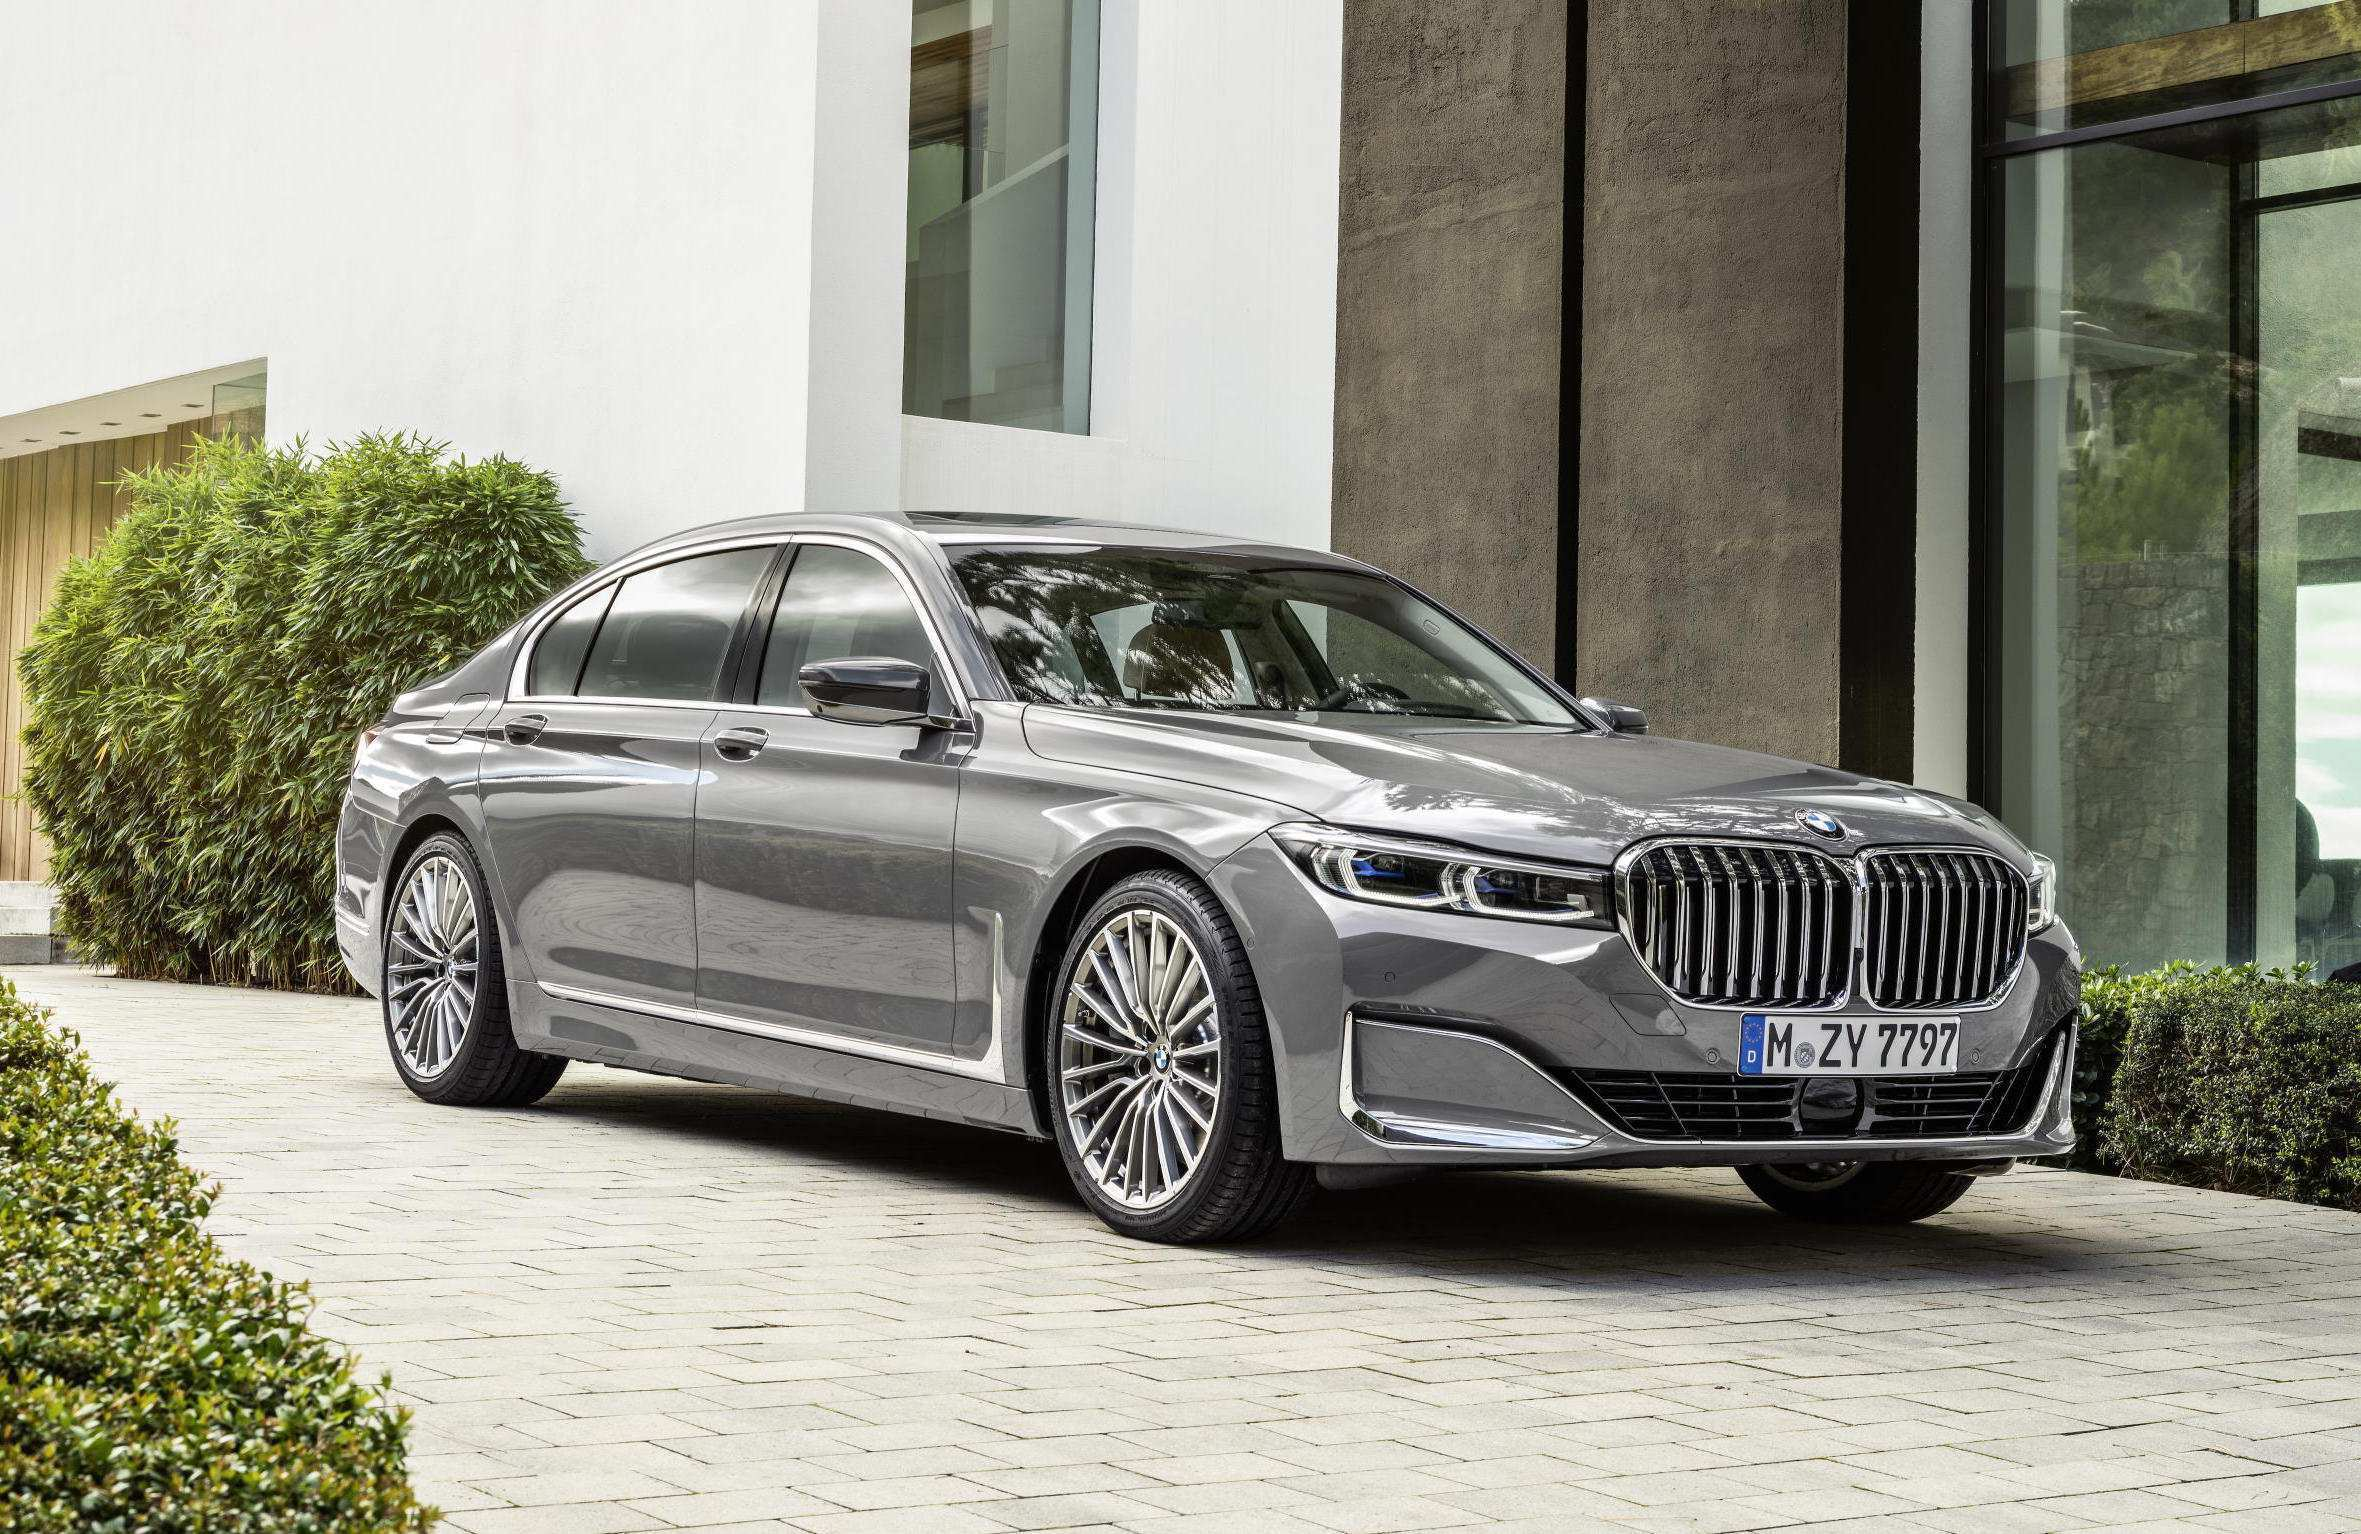 47 Best 2019 Bmw 7 Series Lci Rumors